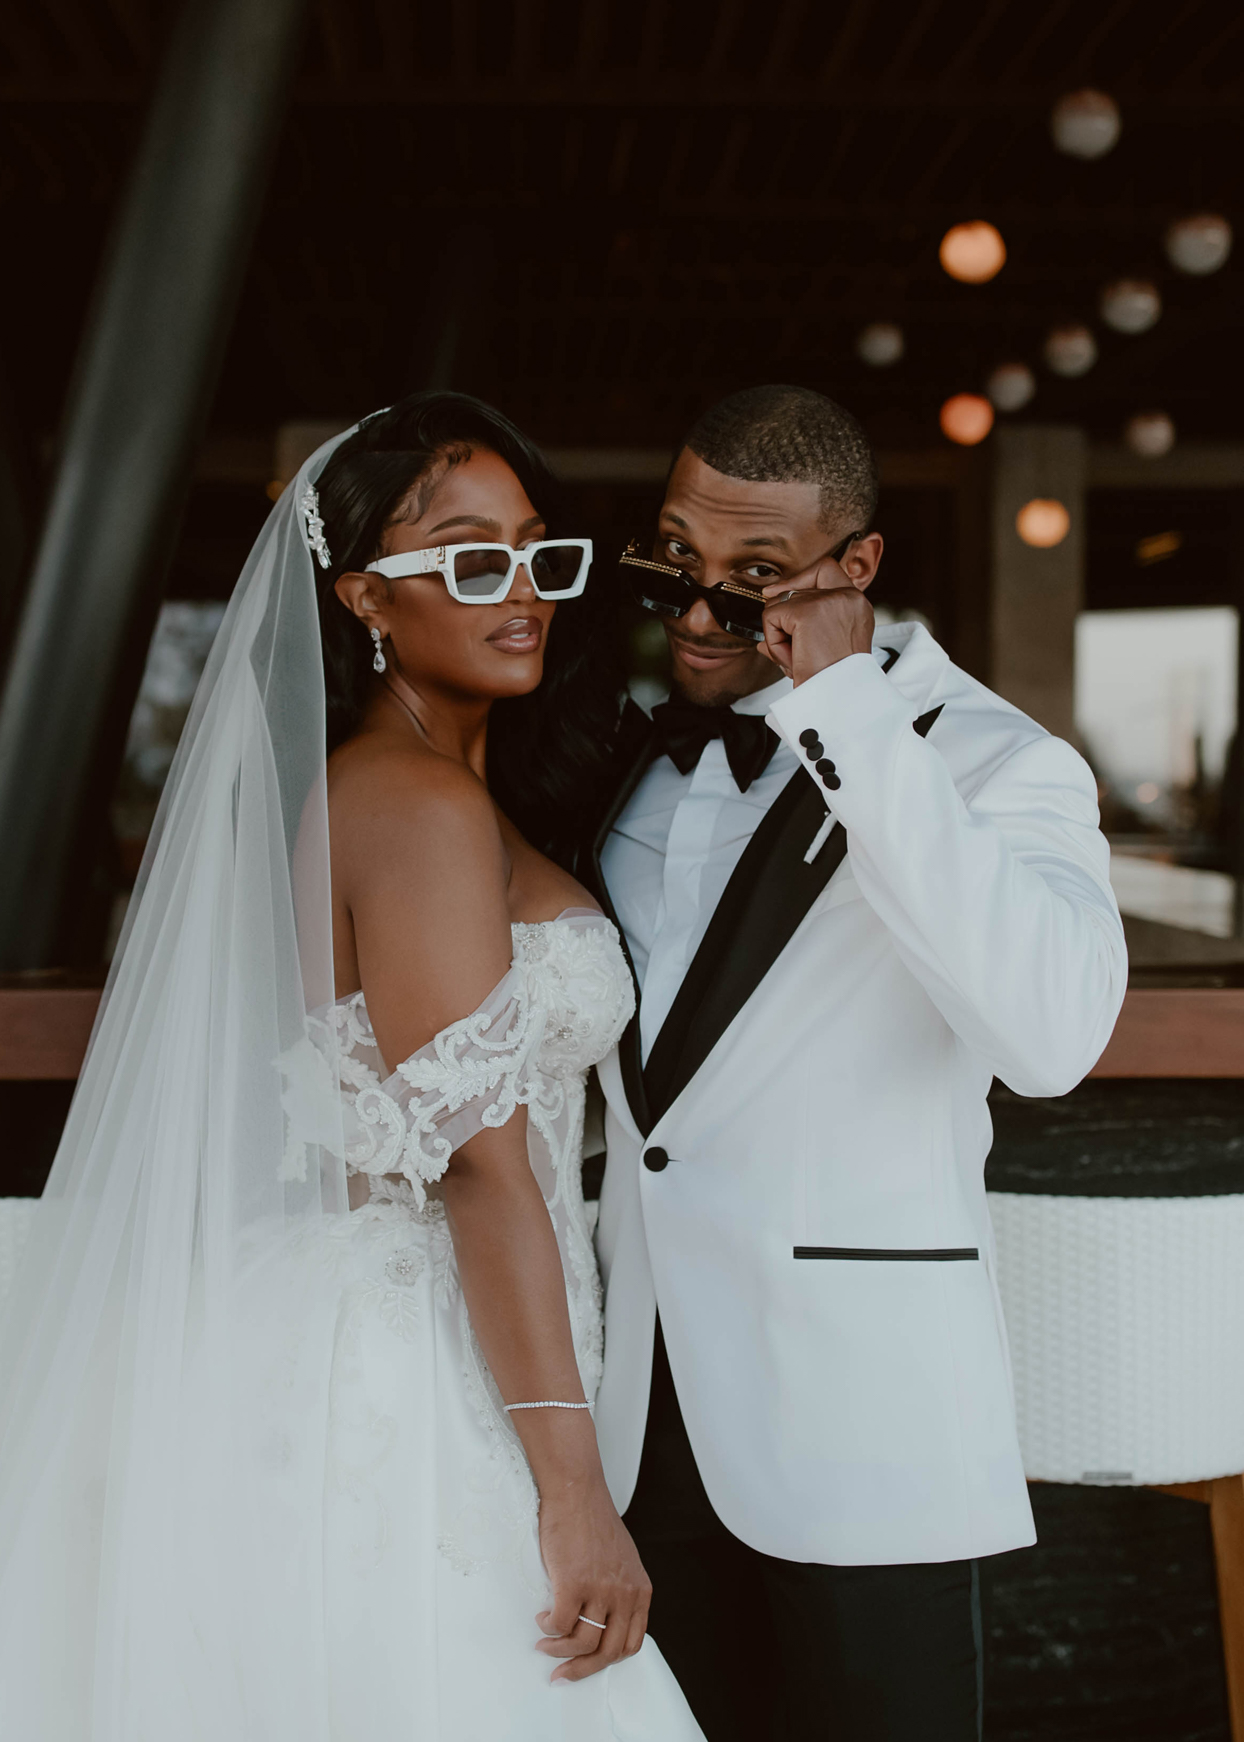 couple portrait in black and white wearing sunglasses